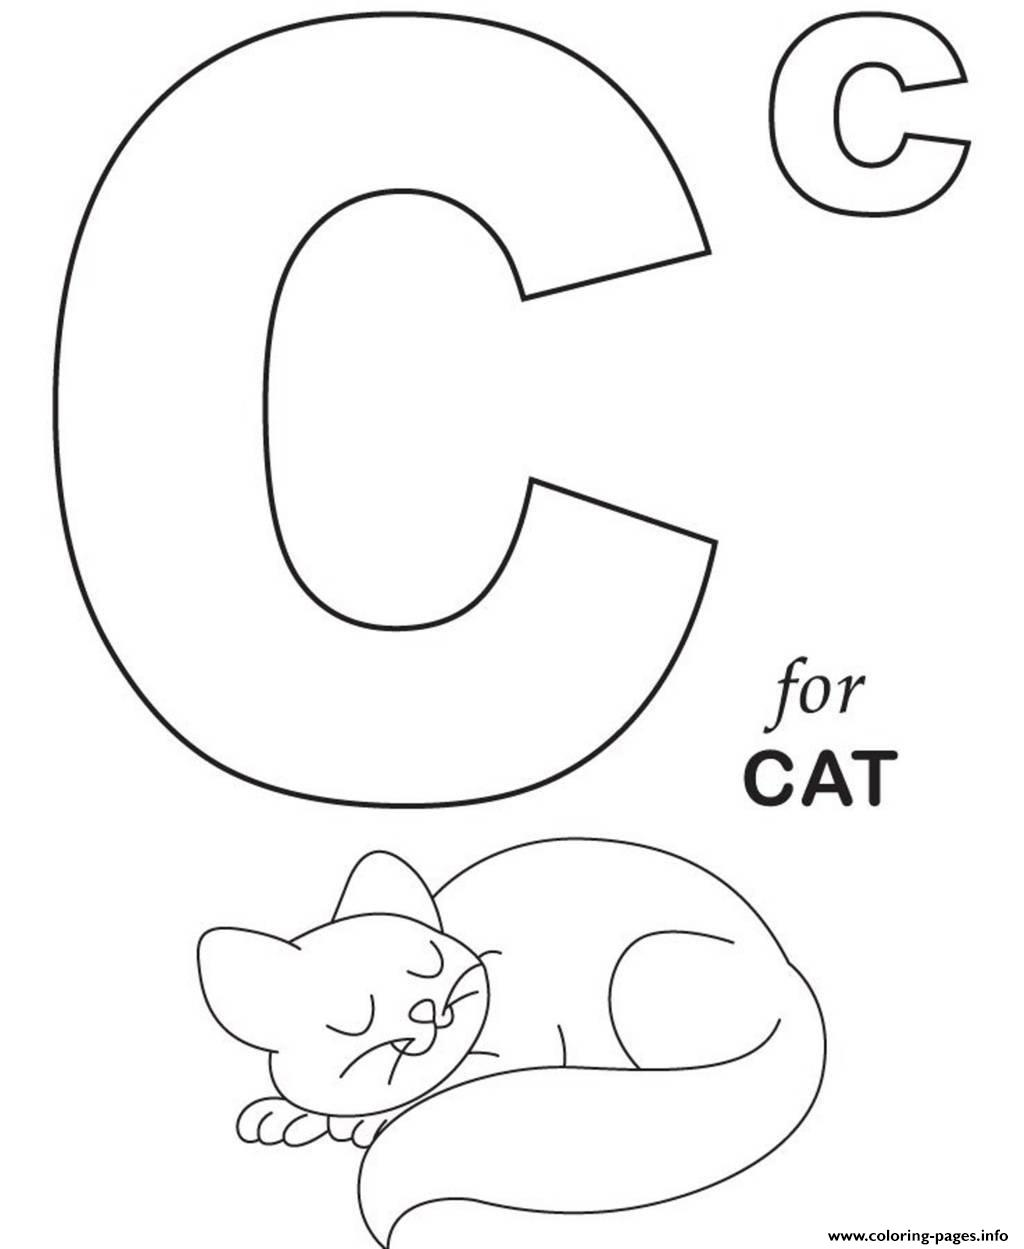 Preschool Worksheet Coloring Page